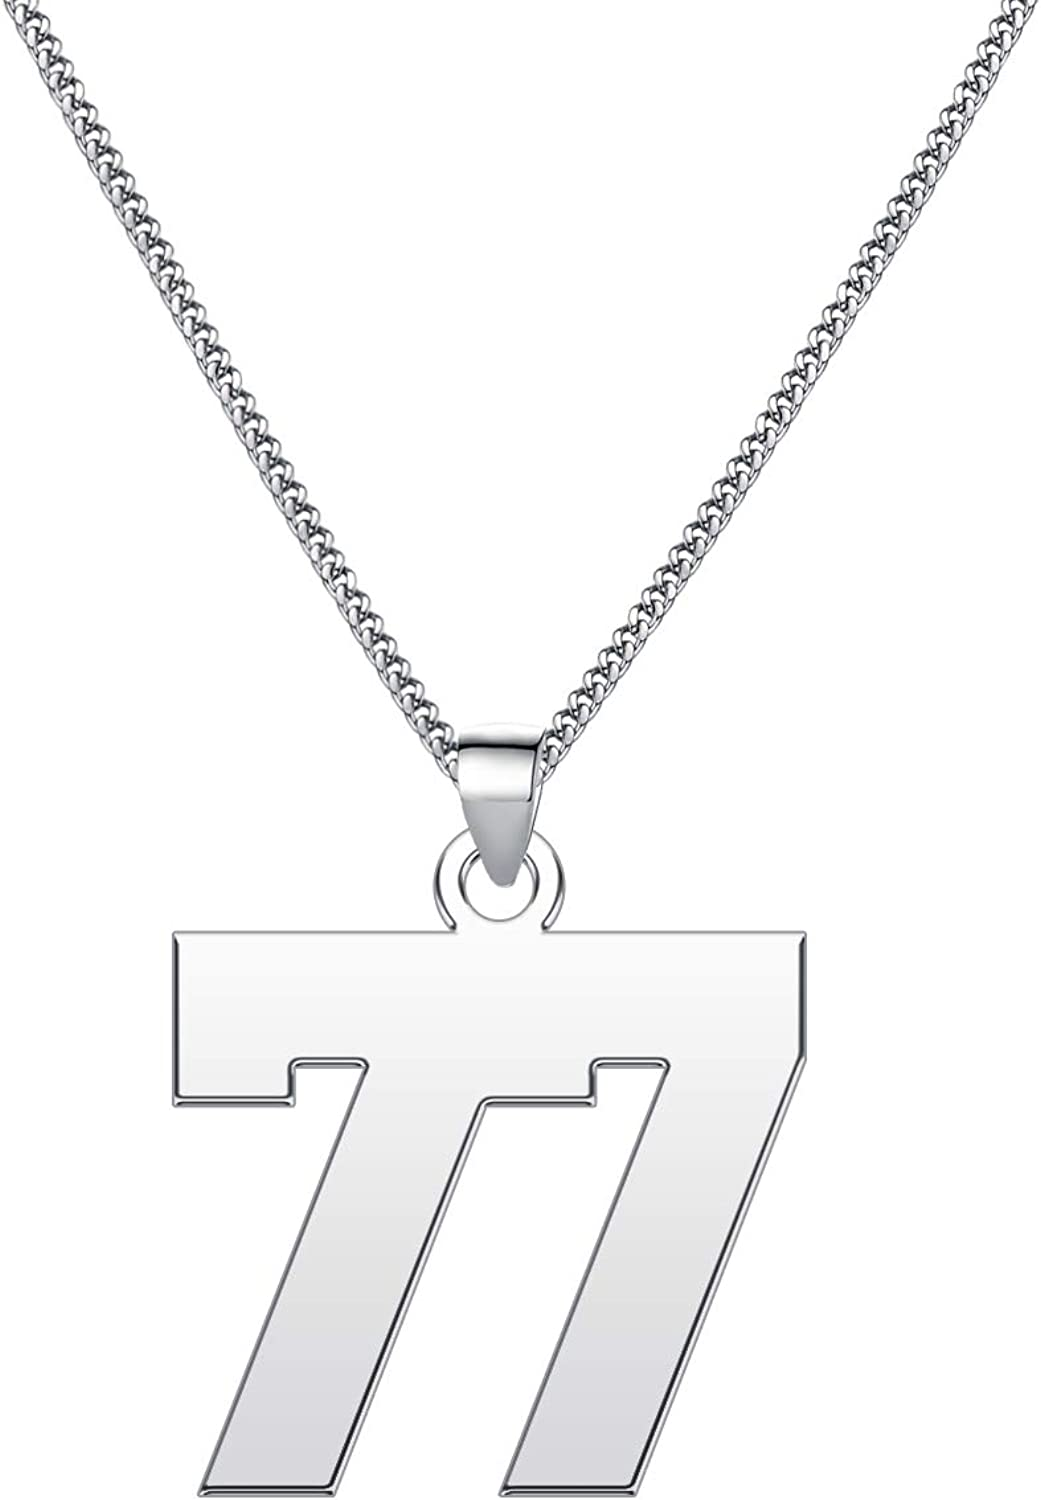 LuxglitterLin Lucky Number Necklace Personalized Stainless Steel Sports Fan Gift for Women 2mm Wide Cuban Chain 0.8inch